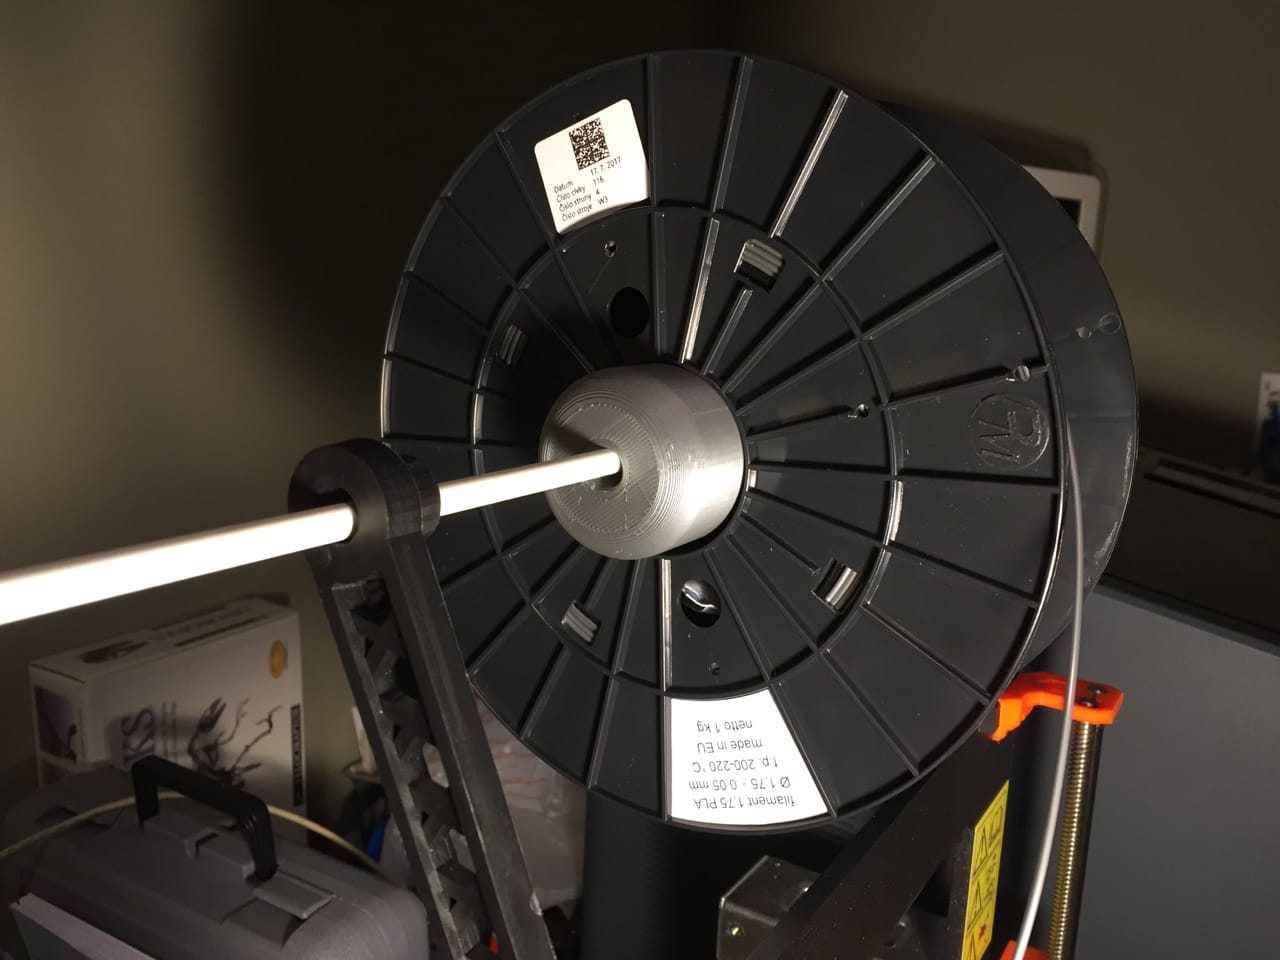 By adding some 3D printed adapters, you can sometimes fit a spool to a 3D printer